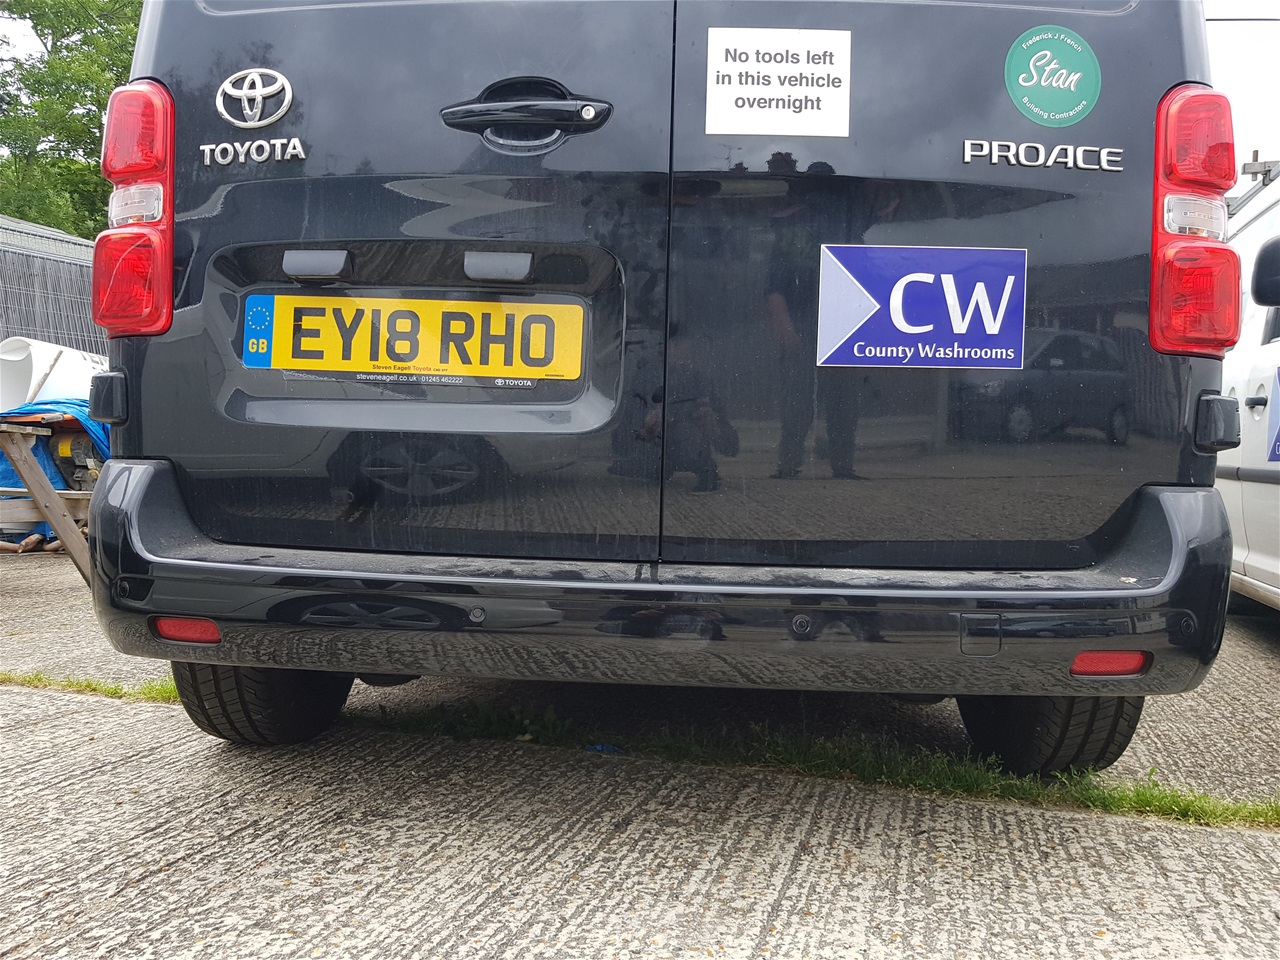 Toyota Proace rear parking sensors